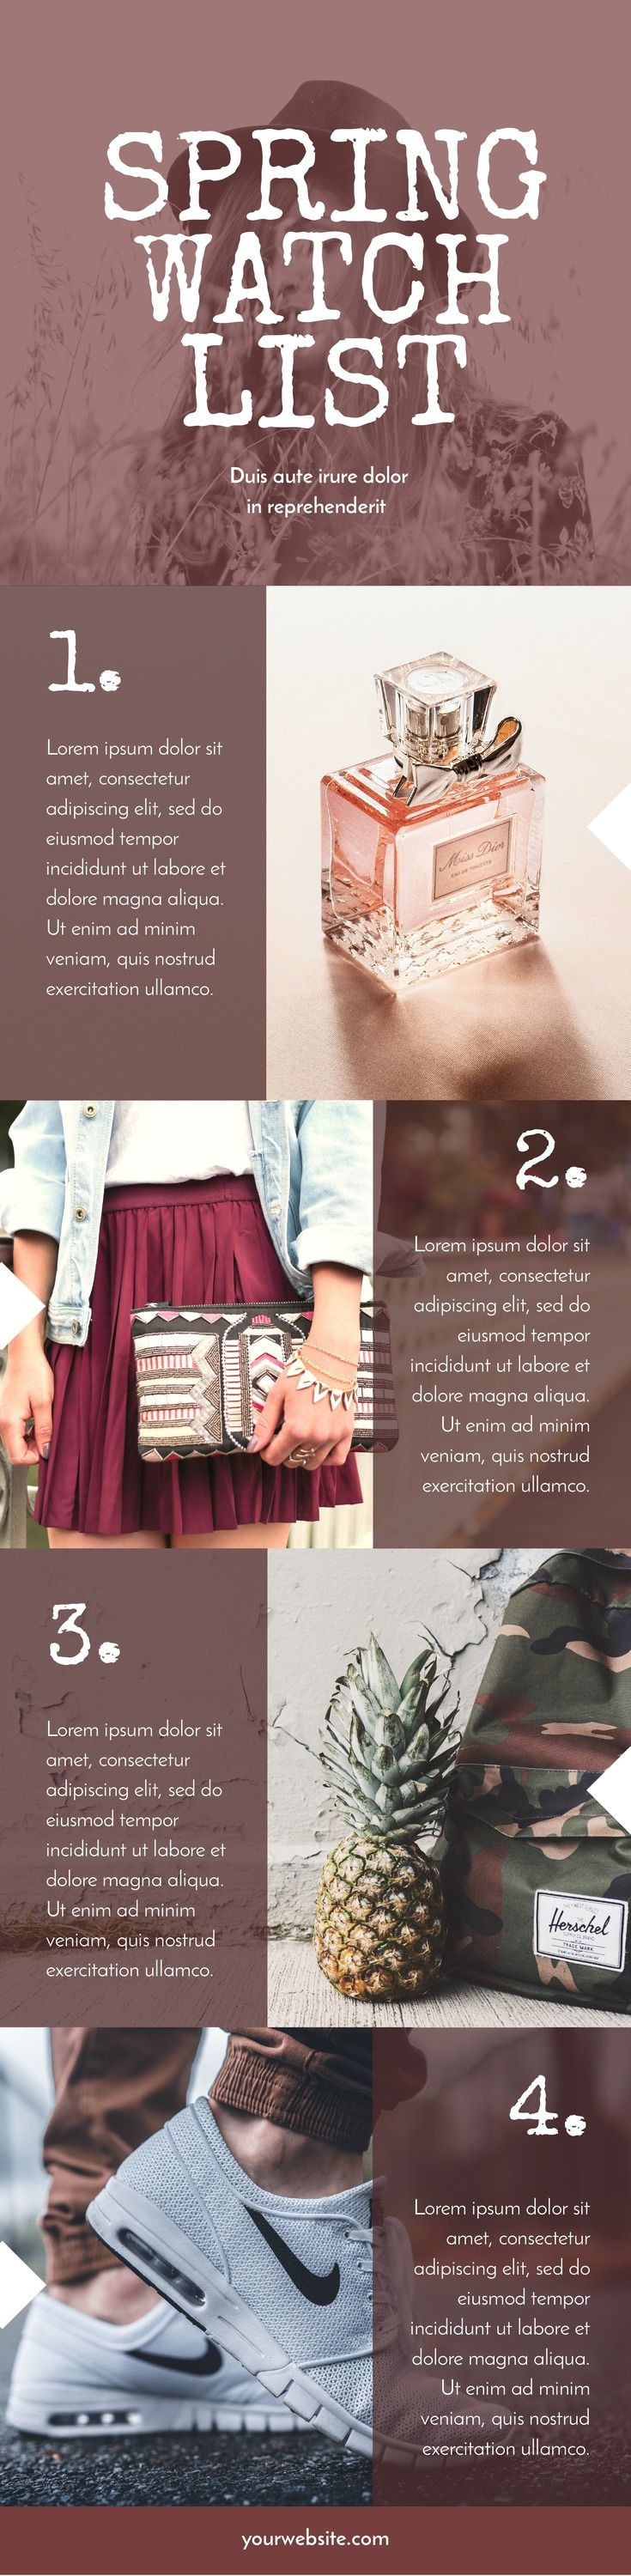 Product Showcase Infographic Template by Easil - 5 Important Reasons to Share Stunning Blog Graphics #ecommerce #templates #pinterestmarketing #infographic